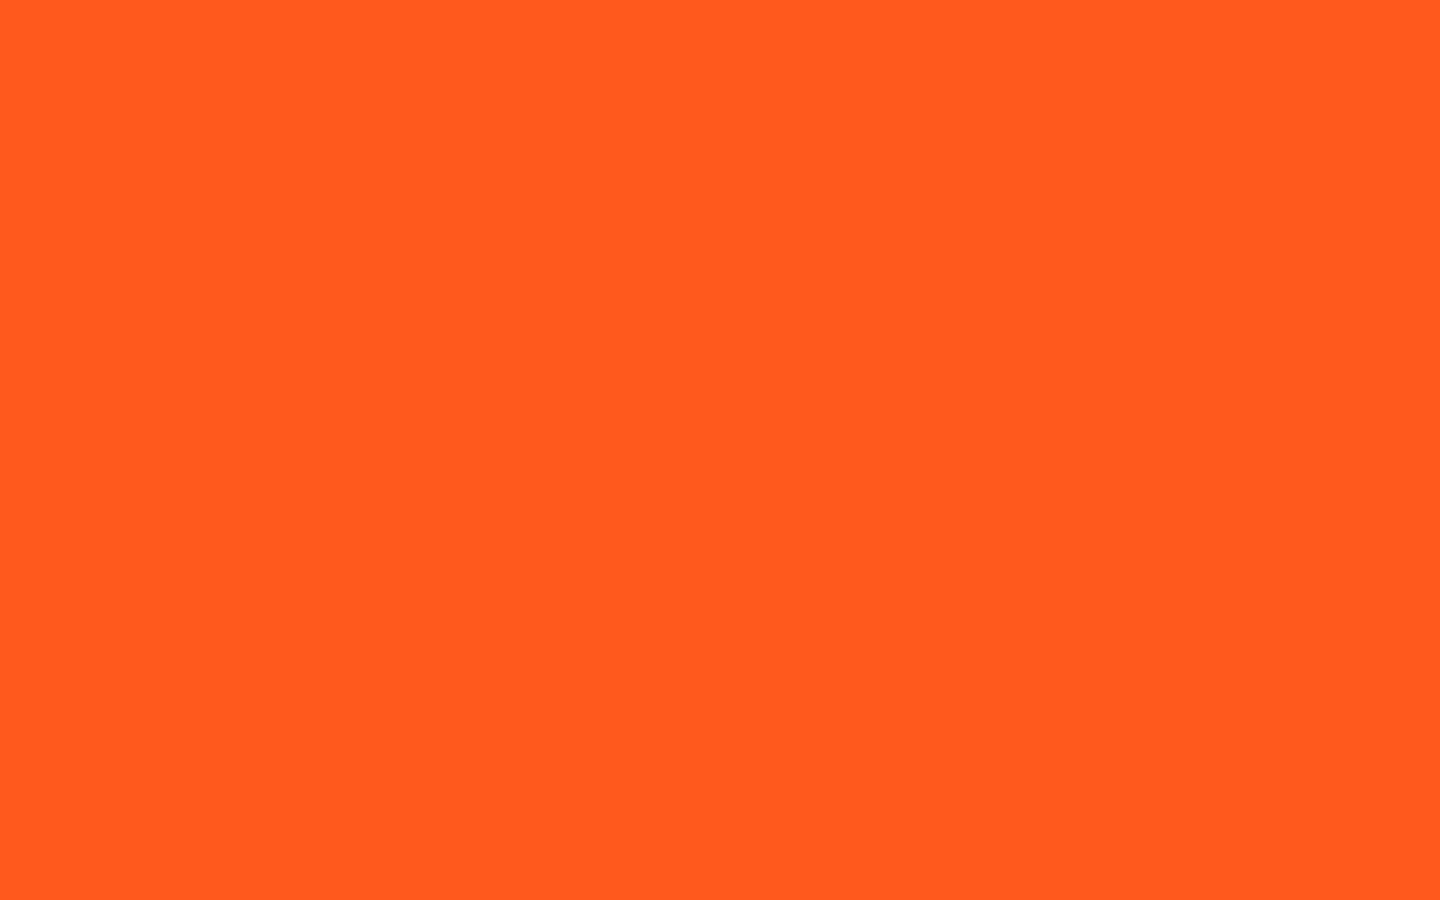 1440x900 Giants Orange Solid Color Background